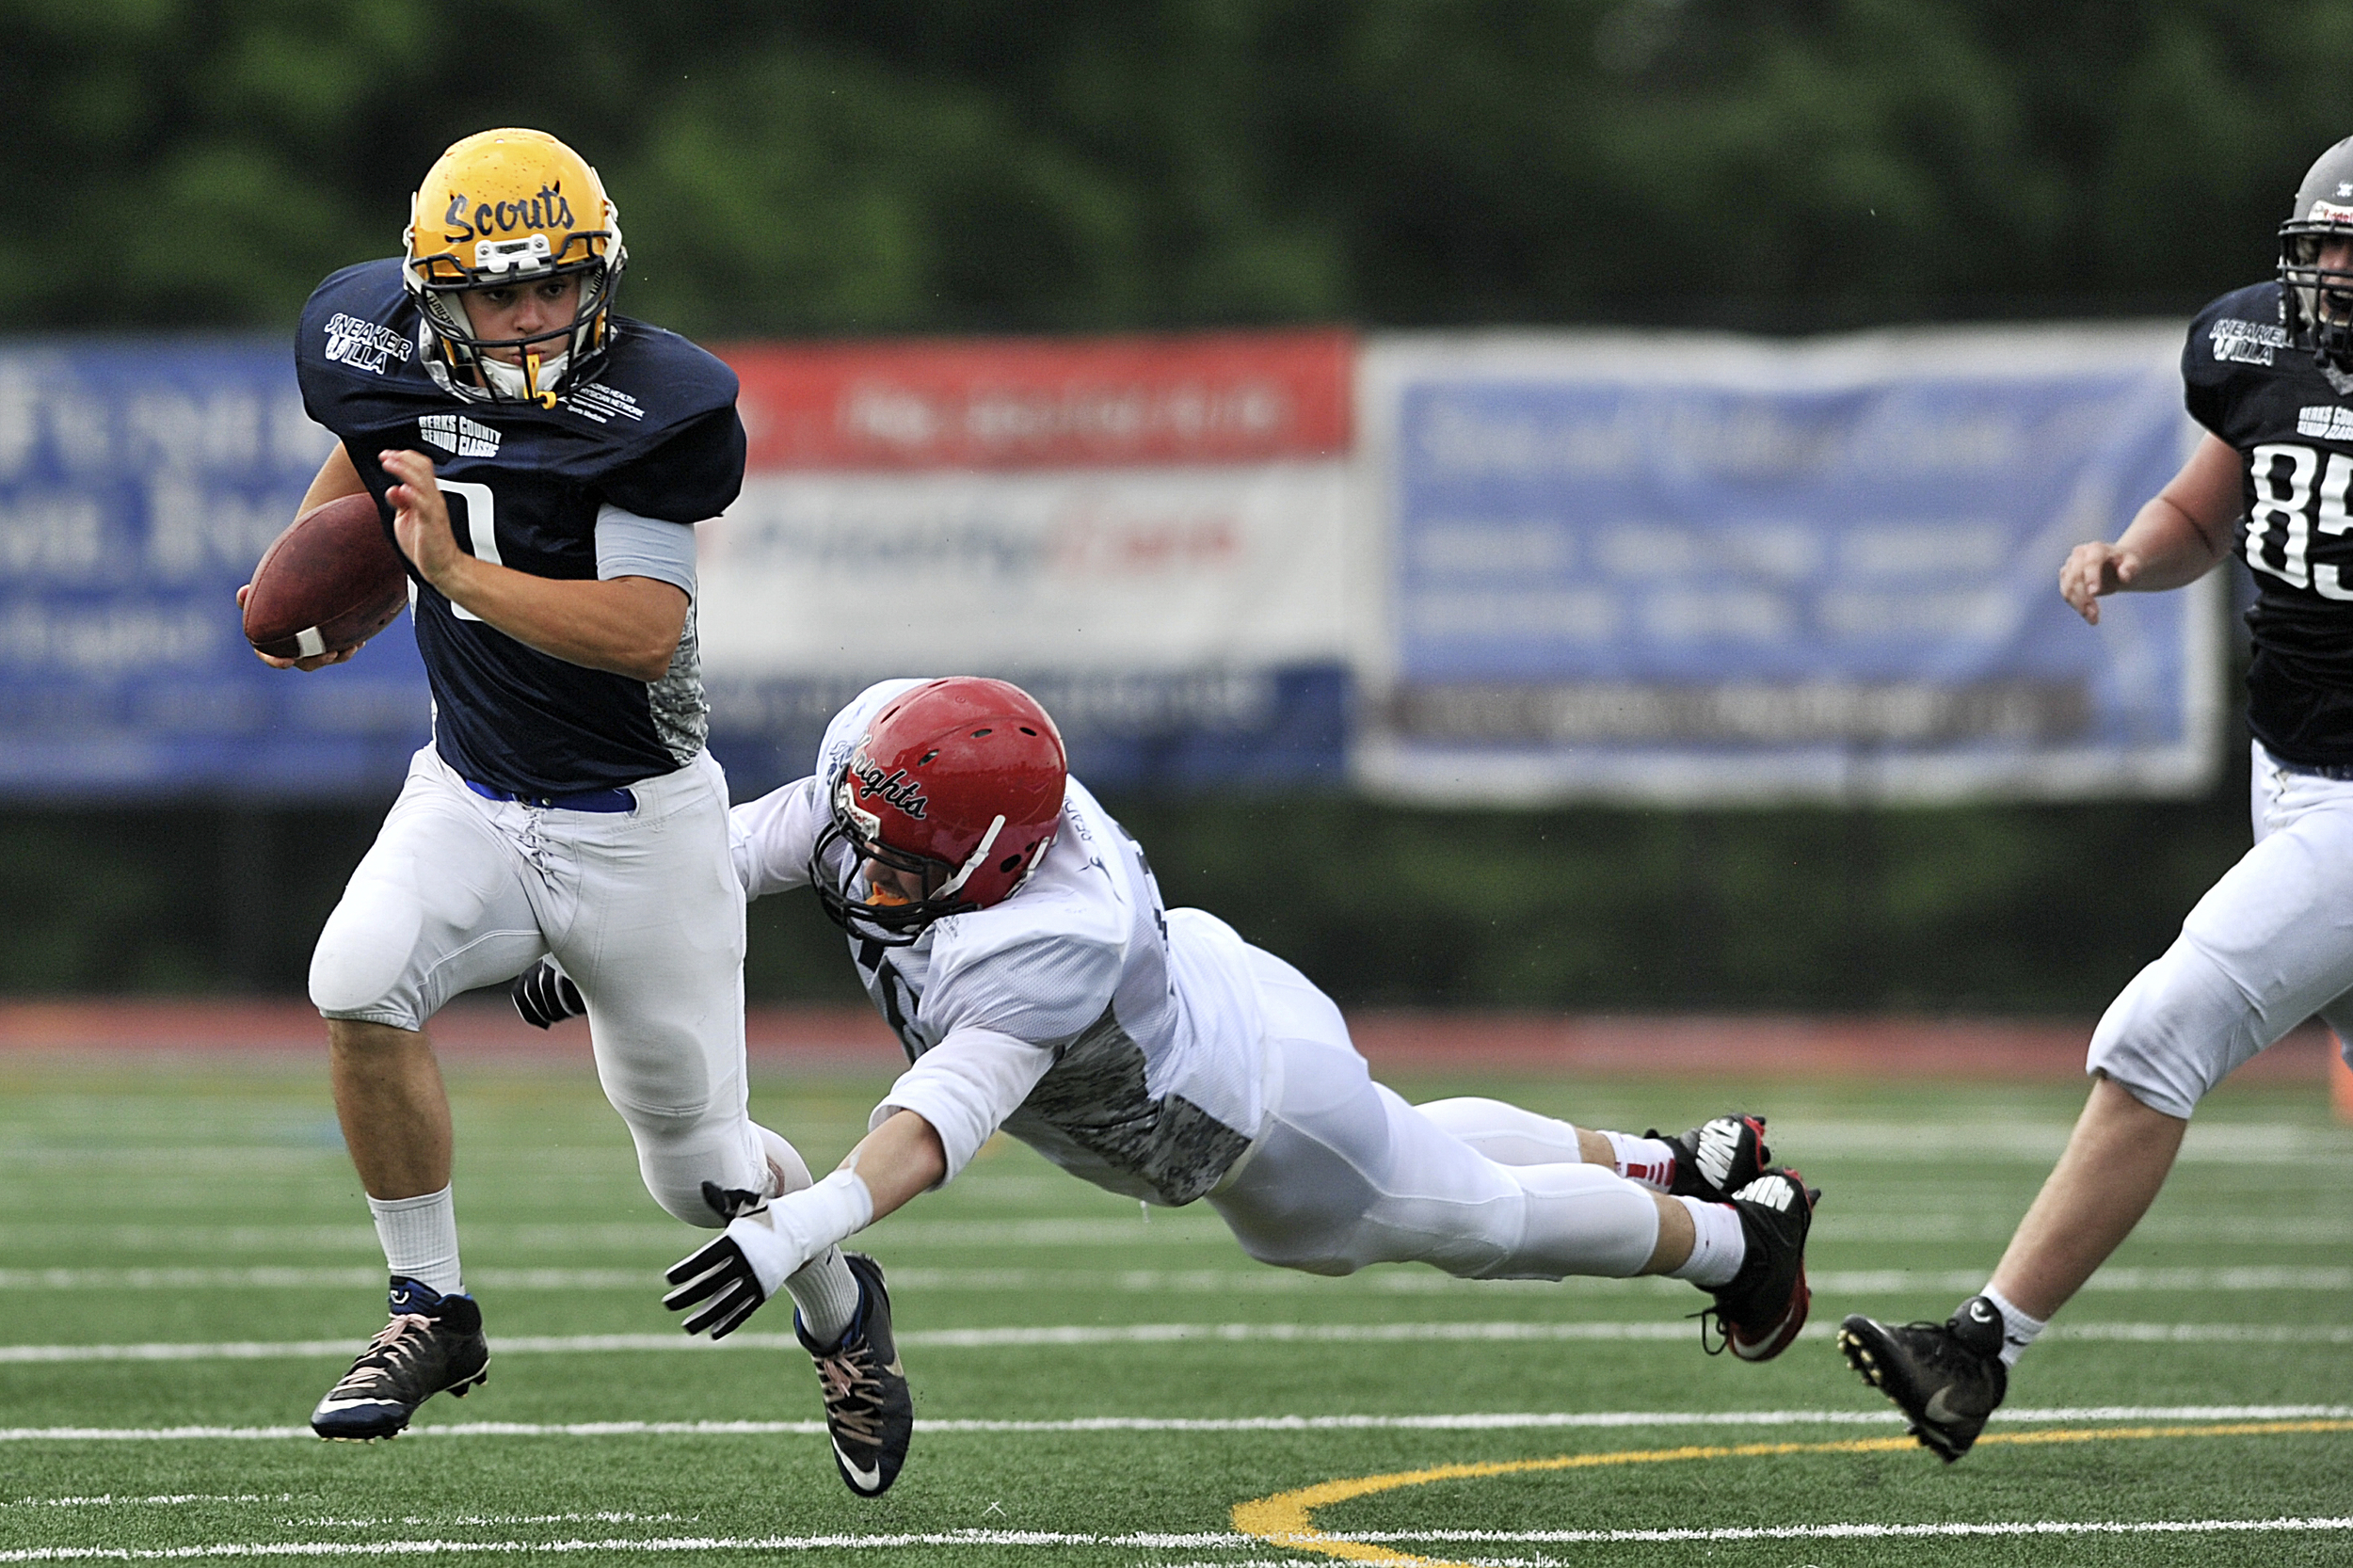 Cody Fidler of Muhlenberg runs the ball at the Berks Senior Football Game at Don Thomas Stadium in Exeter Township, PA, on June 5, 2016. (Reading Eagle: Sarah Stier)